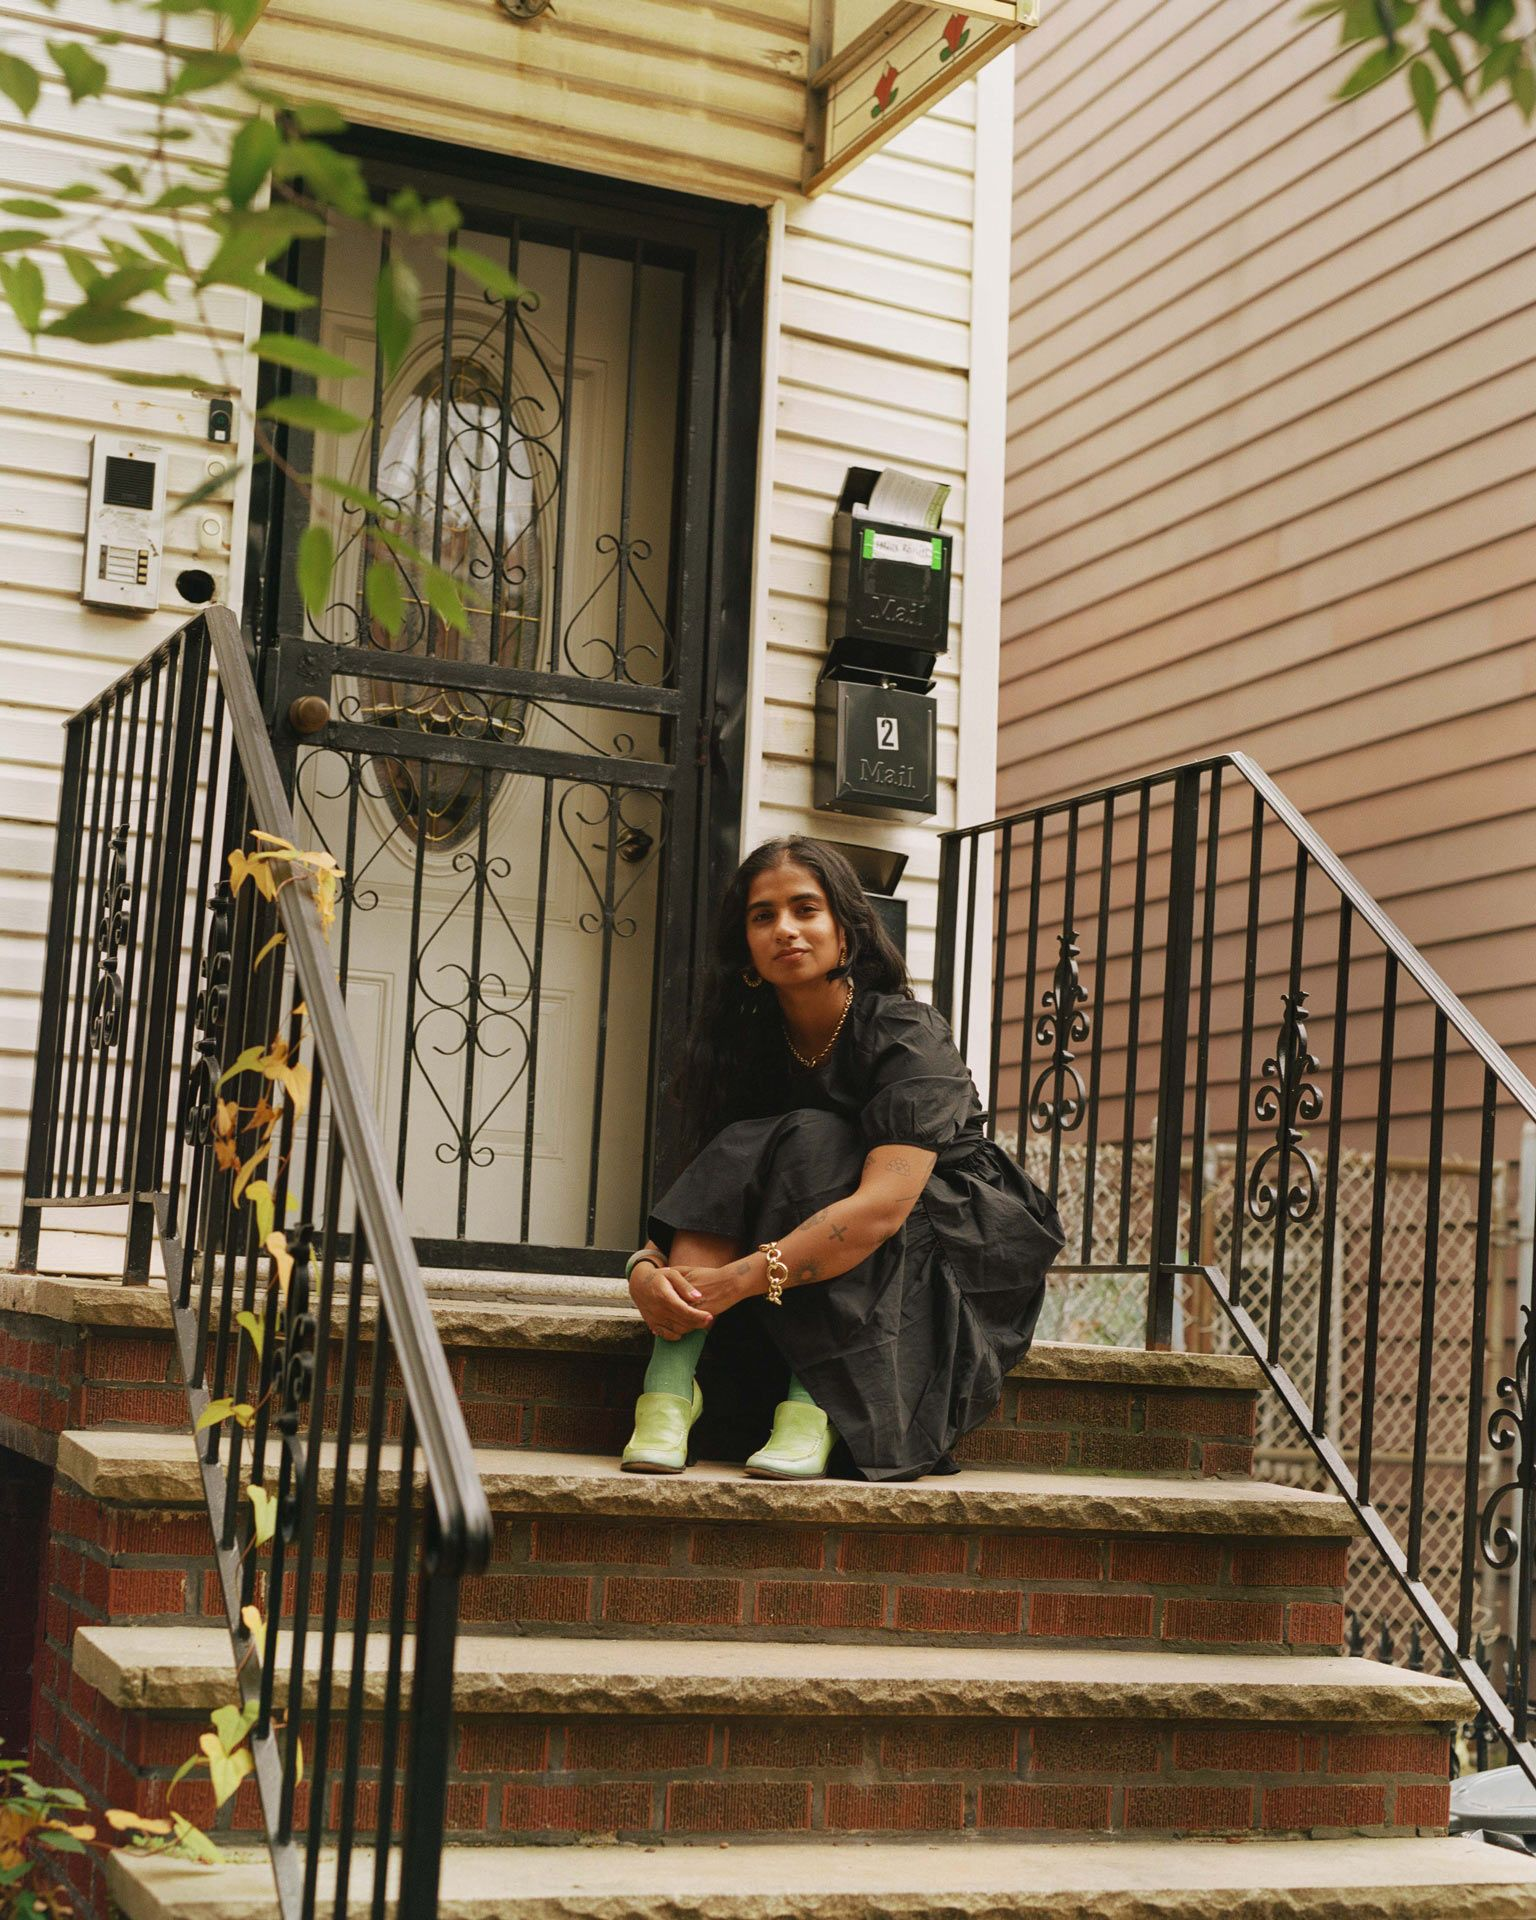 writer Fariha Roisin sitting on the stairs in front of her apartment wearing black dress green socks and green shoes looking at camera smiling with her arms around her knees photographed by Oumayma B. Tanfous for Levi's